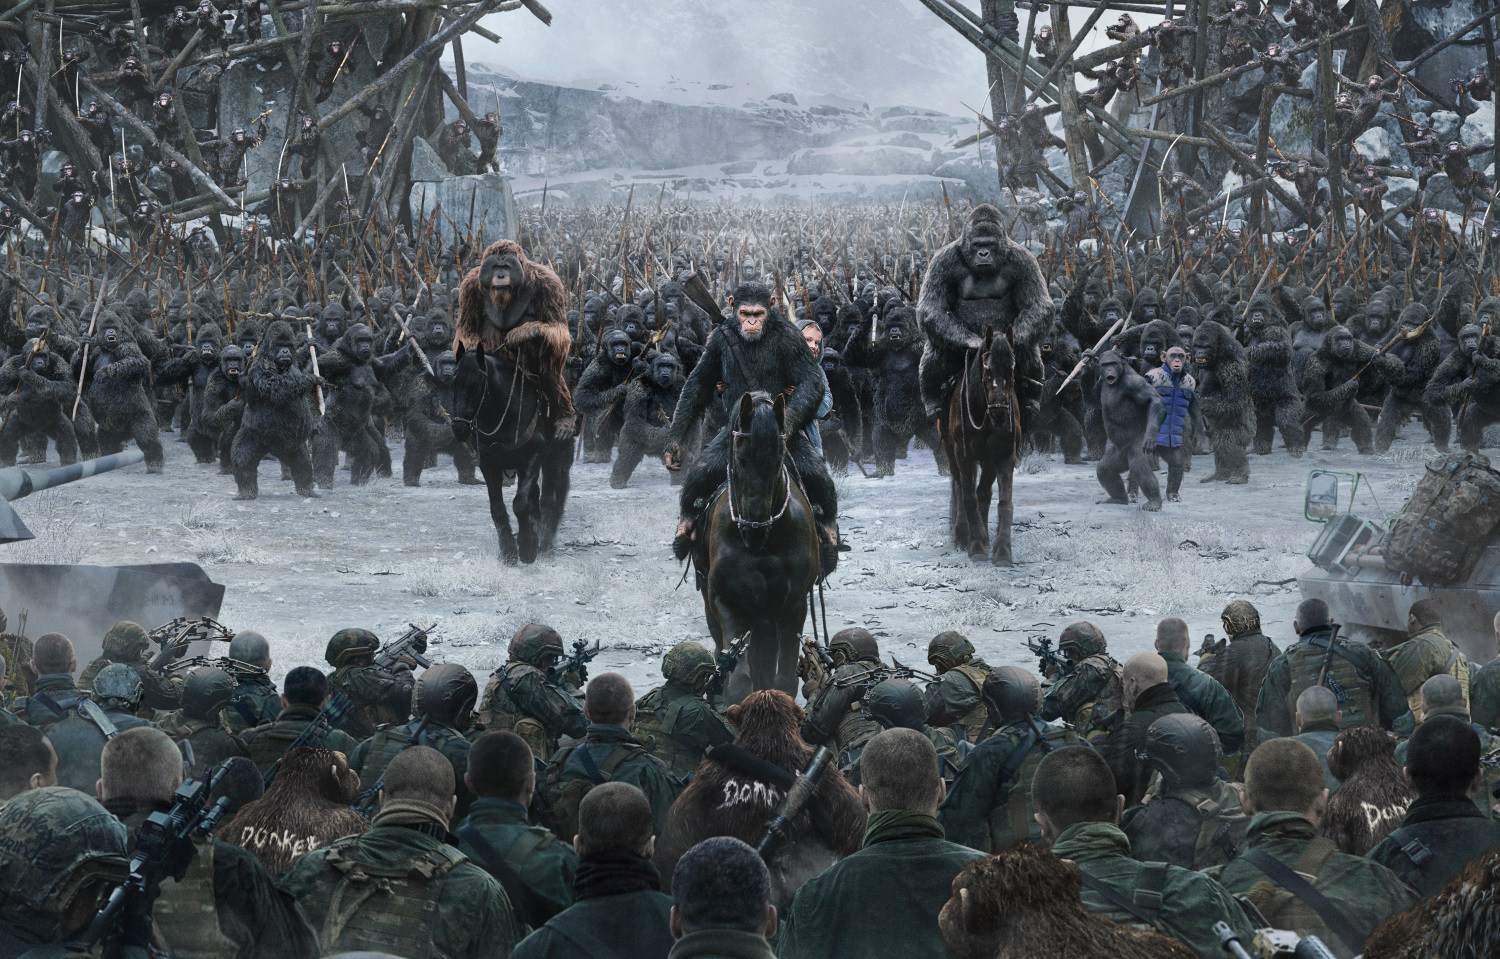 https://cinemaplanet.pt/wp-content/uploads/2017/07/War-for-the-Planet-of-the-Apes.jpg